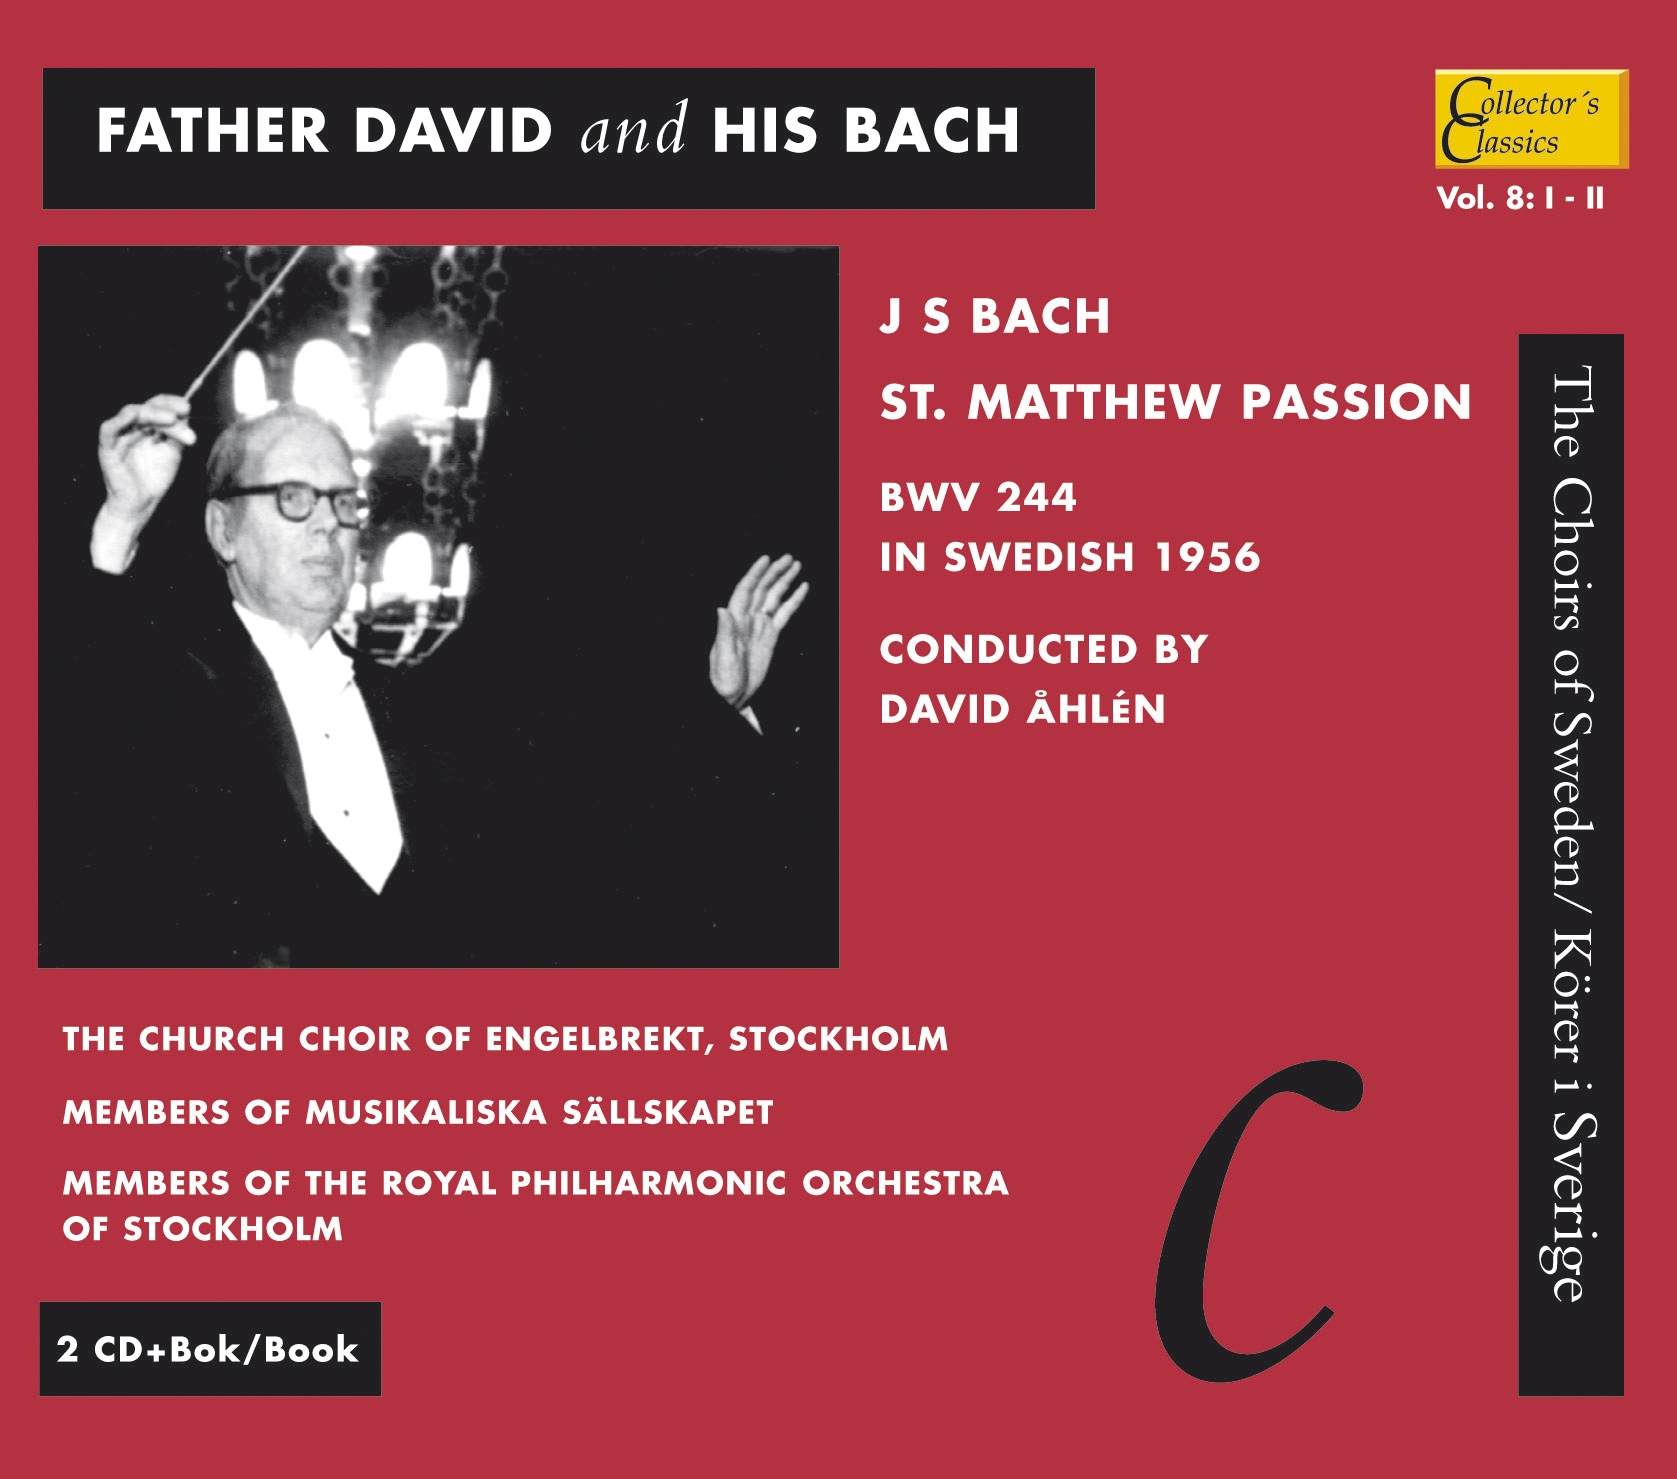 Father David and his Bach vol. 8